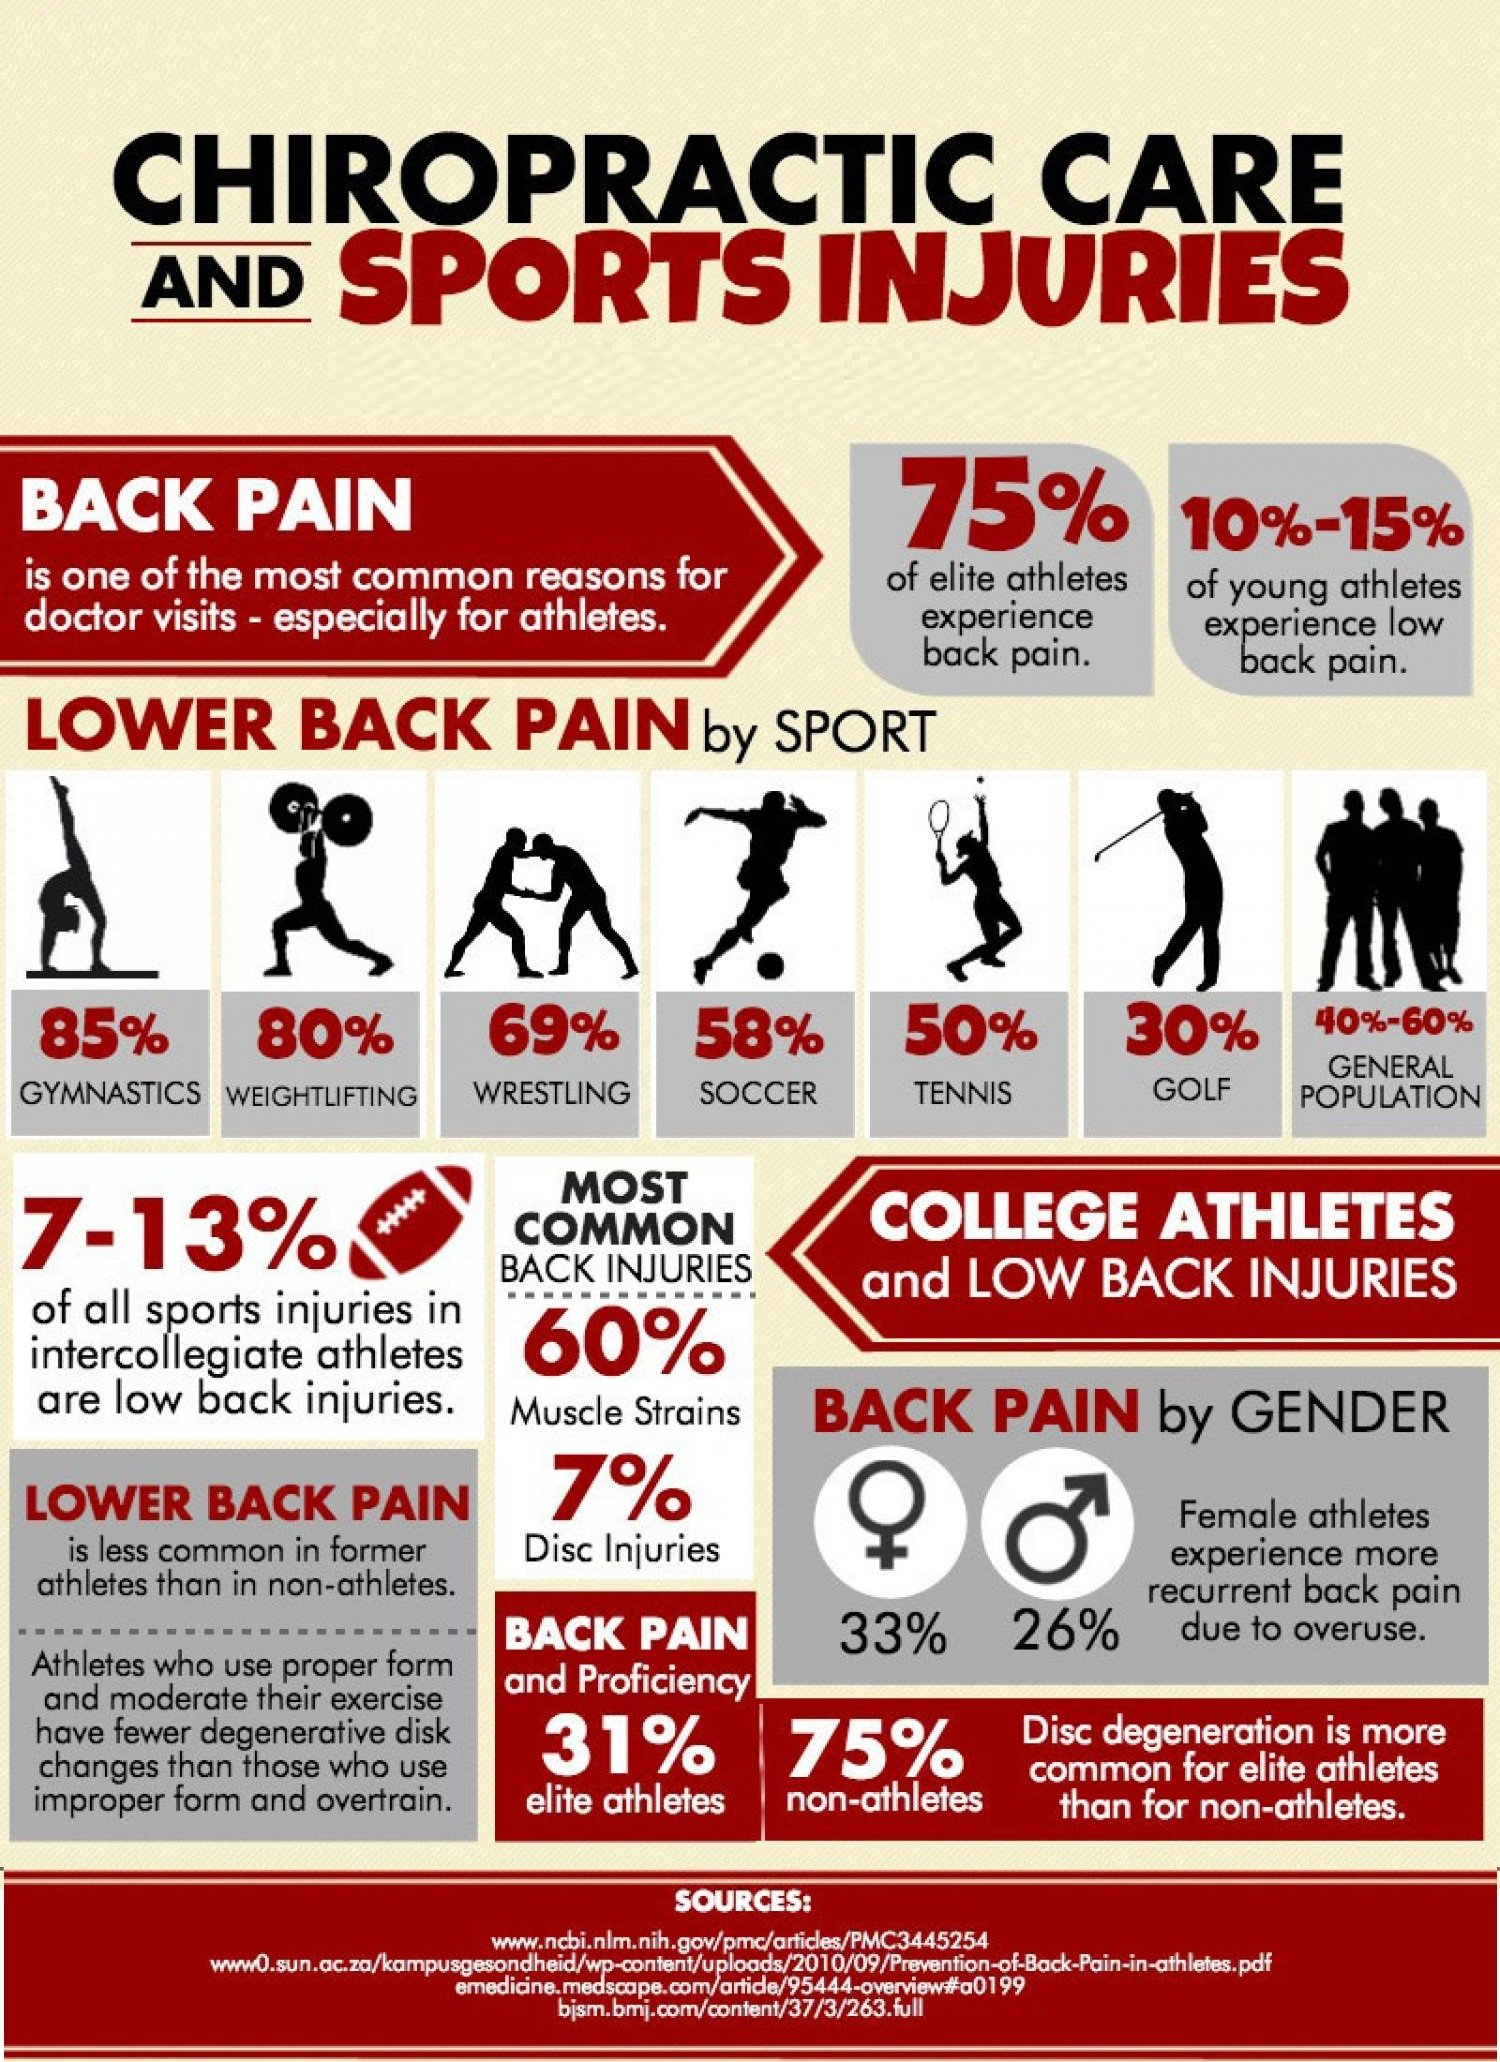 Statistics on low back pain in sports.